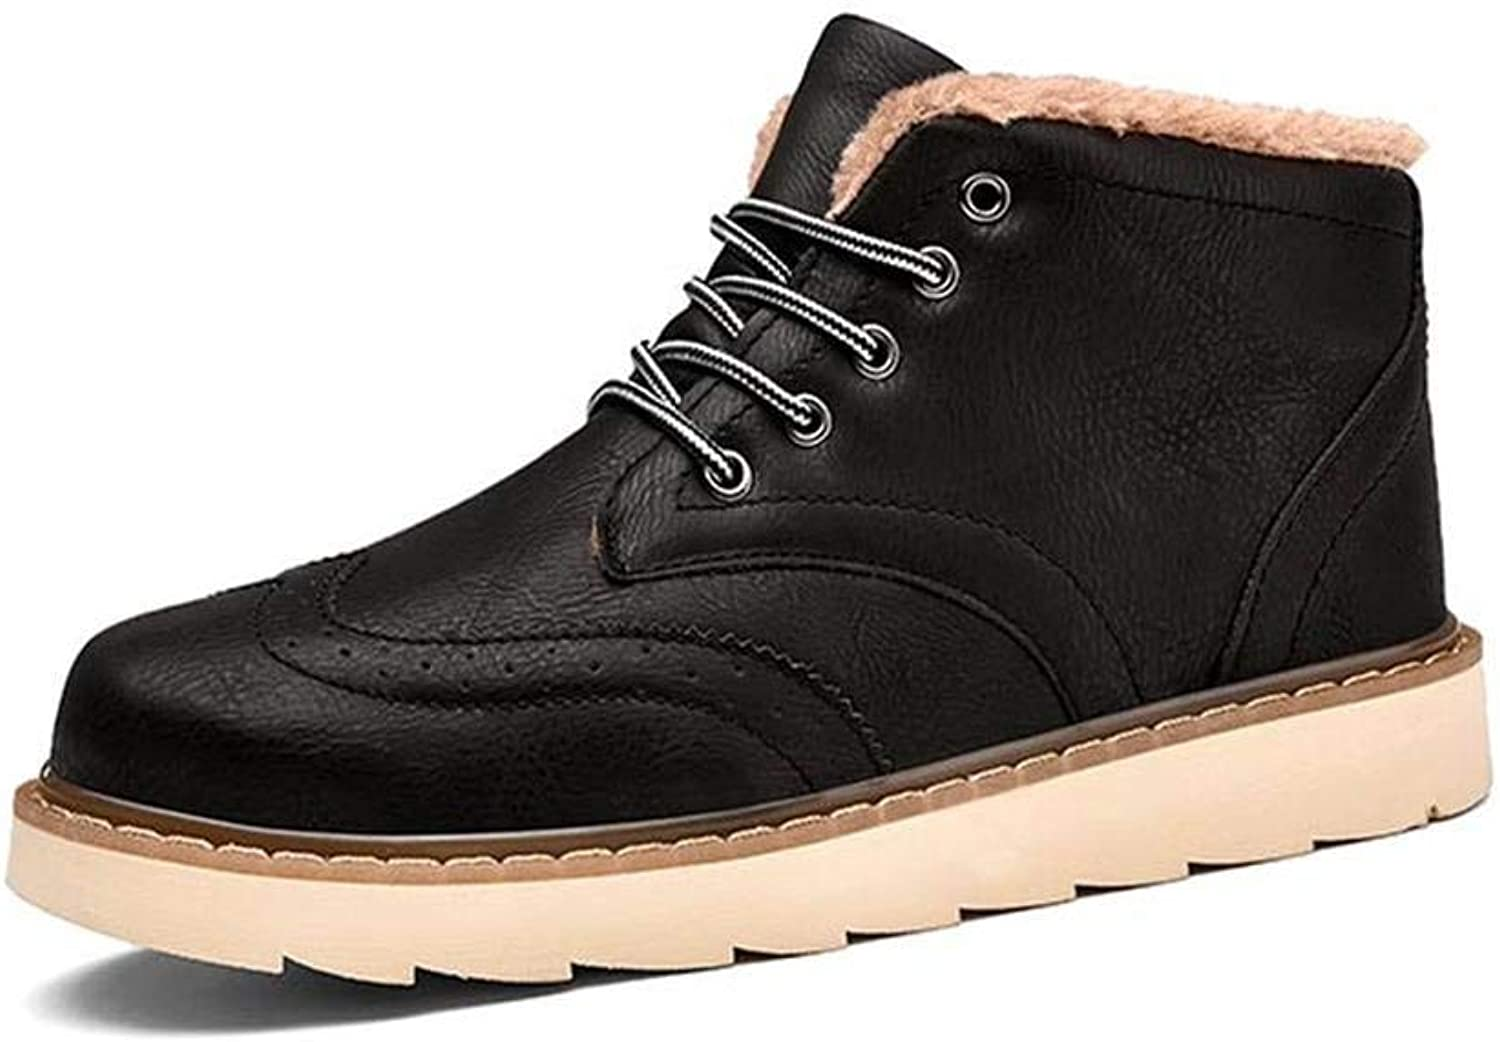 FuweiEncore Winter men's high boots with high fashion boots with boots plus size (color   39, Size   Black)